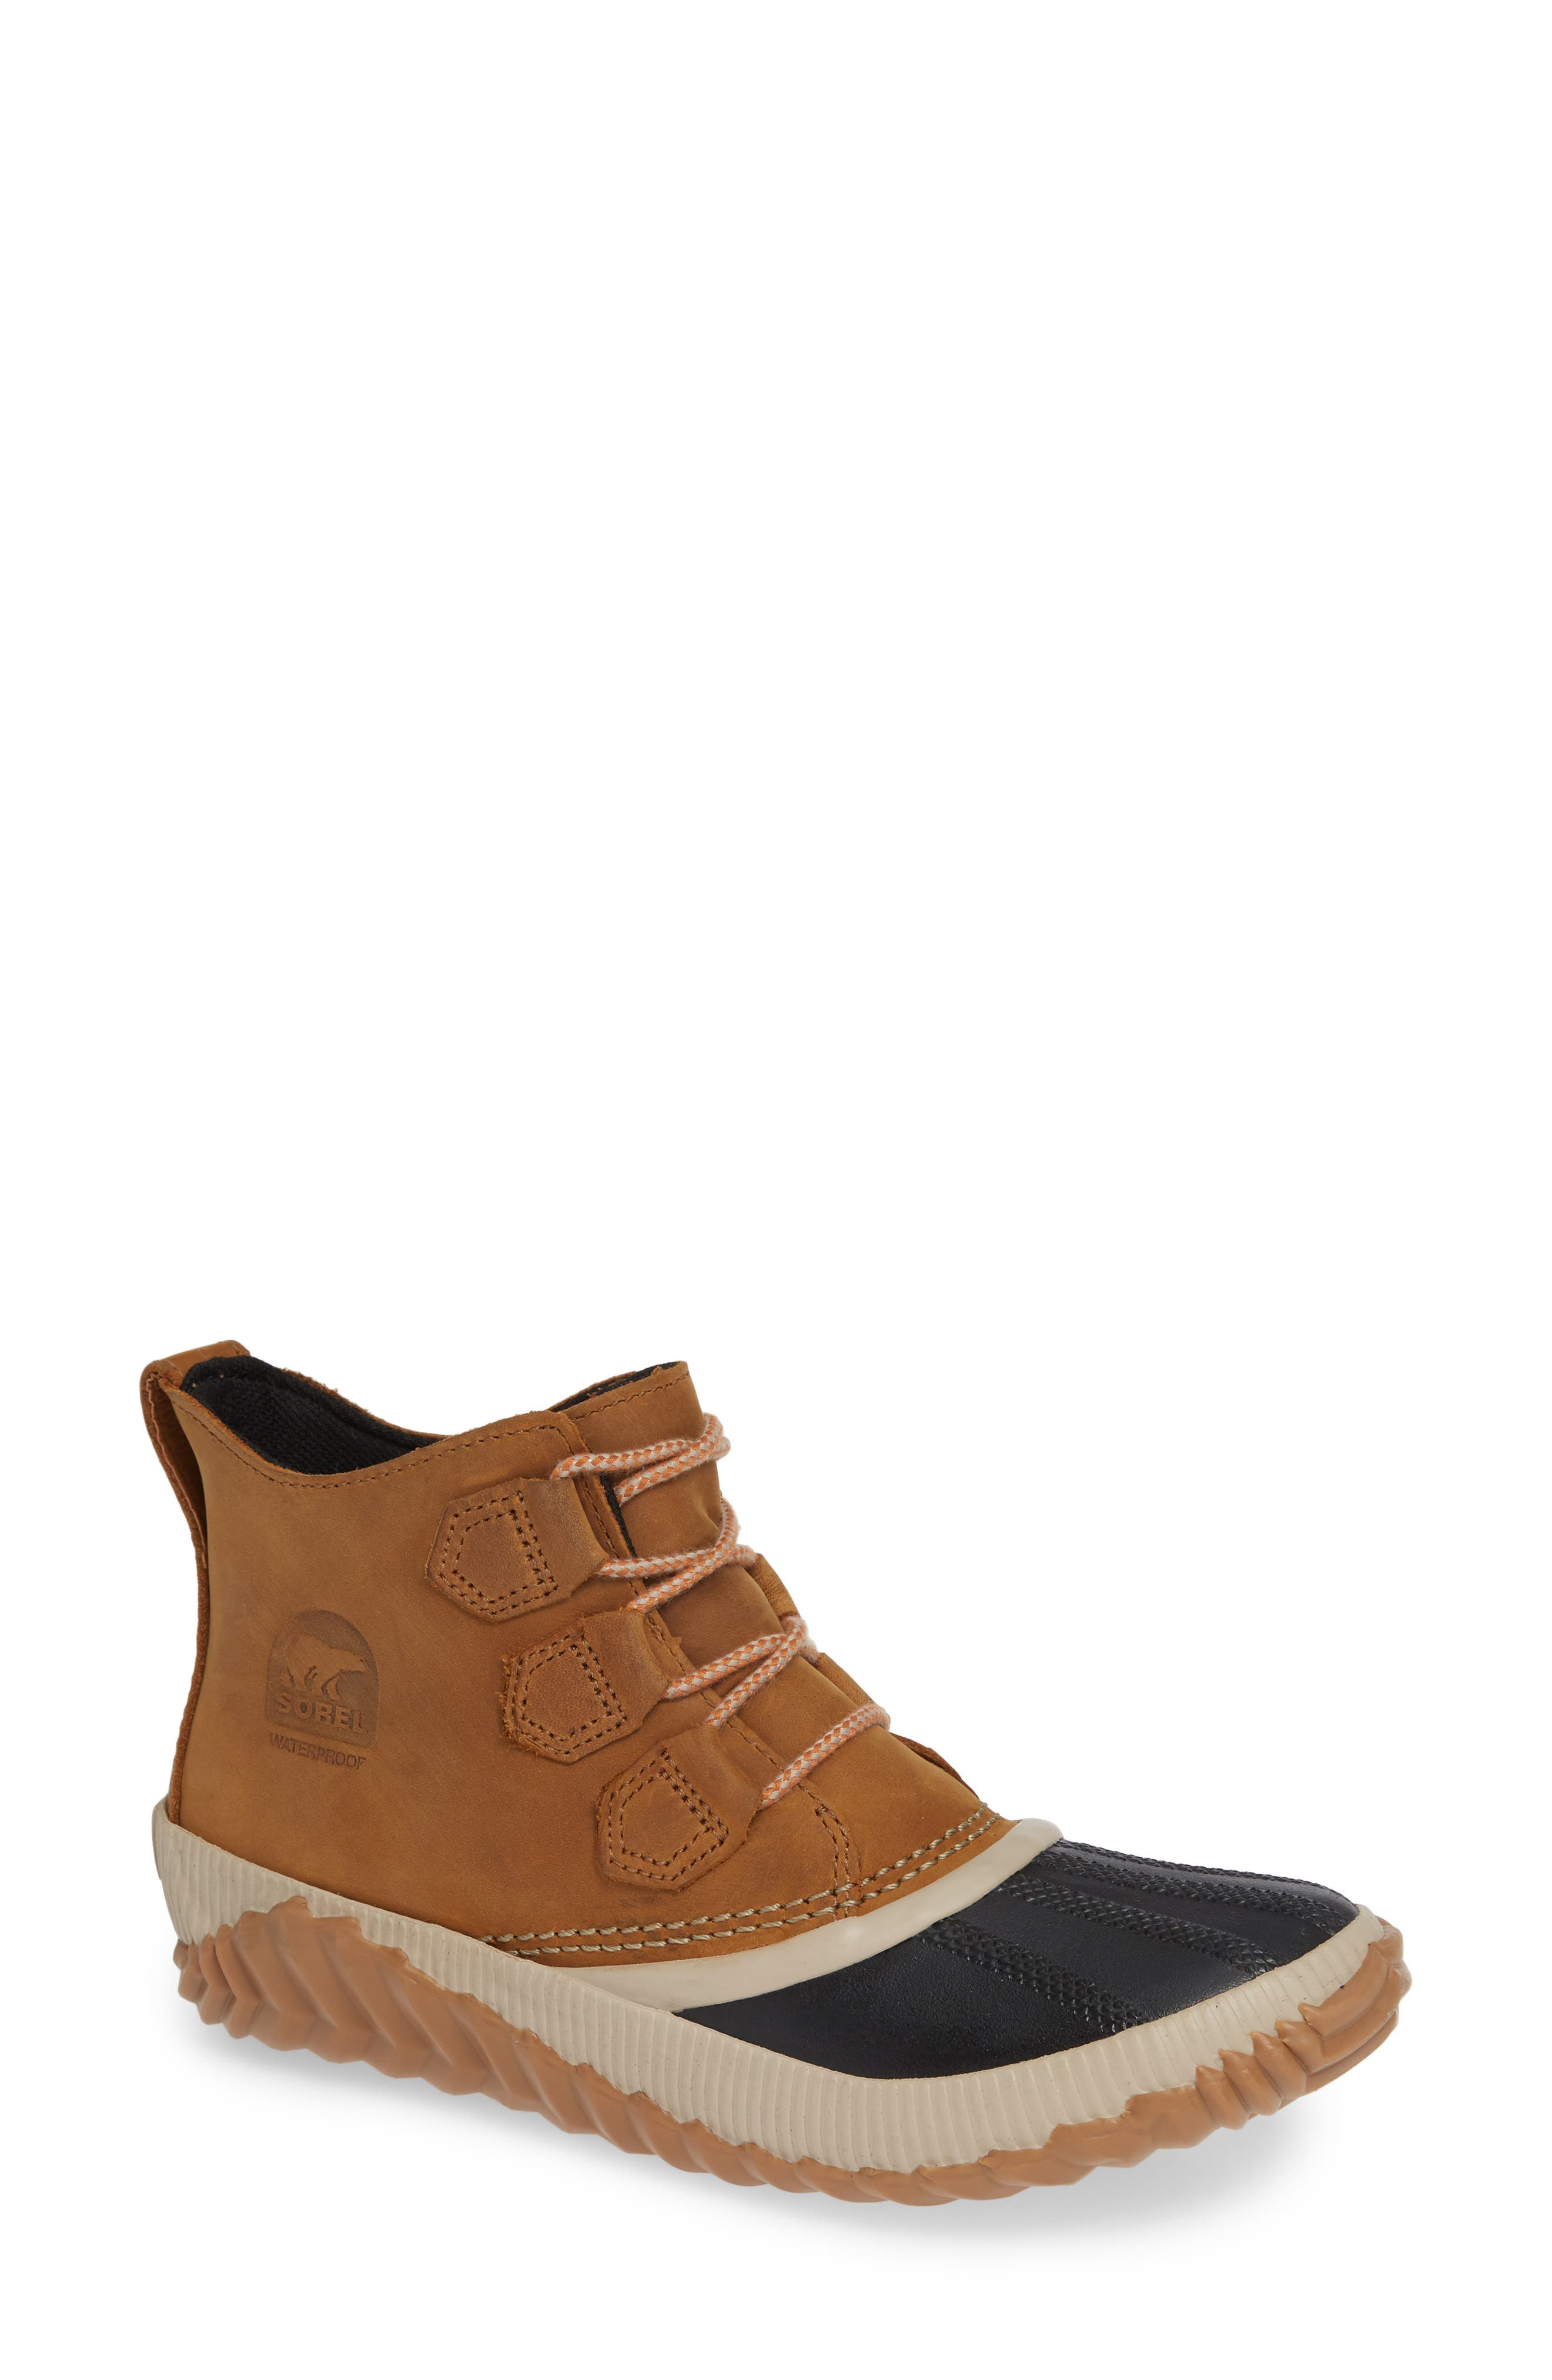 Sorel Out N About Plus Waterproof Bootie- Brown